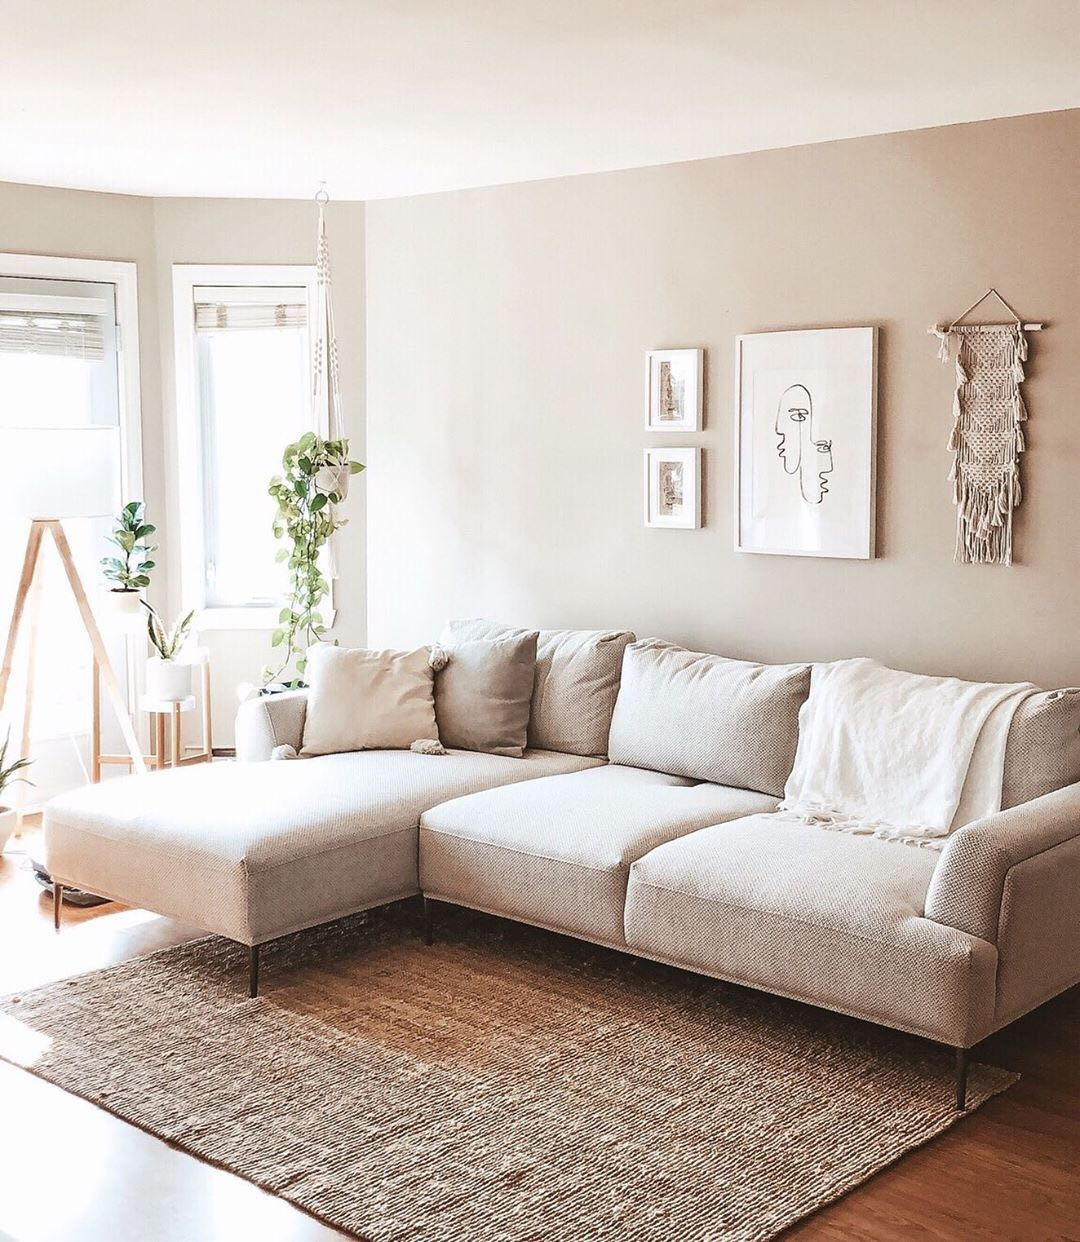 Structube On Twitter With Just One Look You Can Tell That Erin Is A Sectional Sofa You Will Want To Curl Up On Instagram Laubedard Discover It Here Https T Co Pihoshadcu Https T Co Kq9tomnsm2